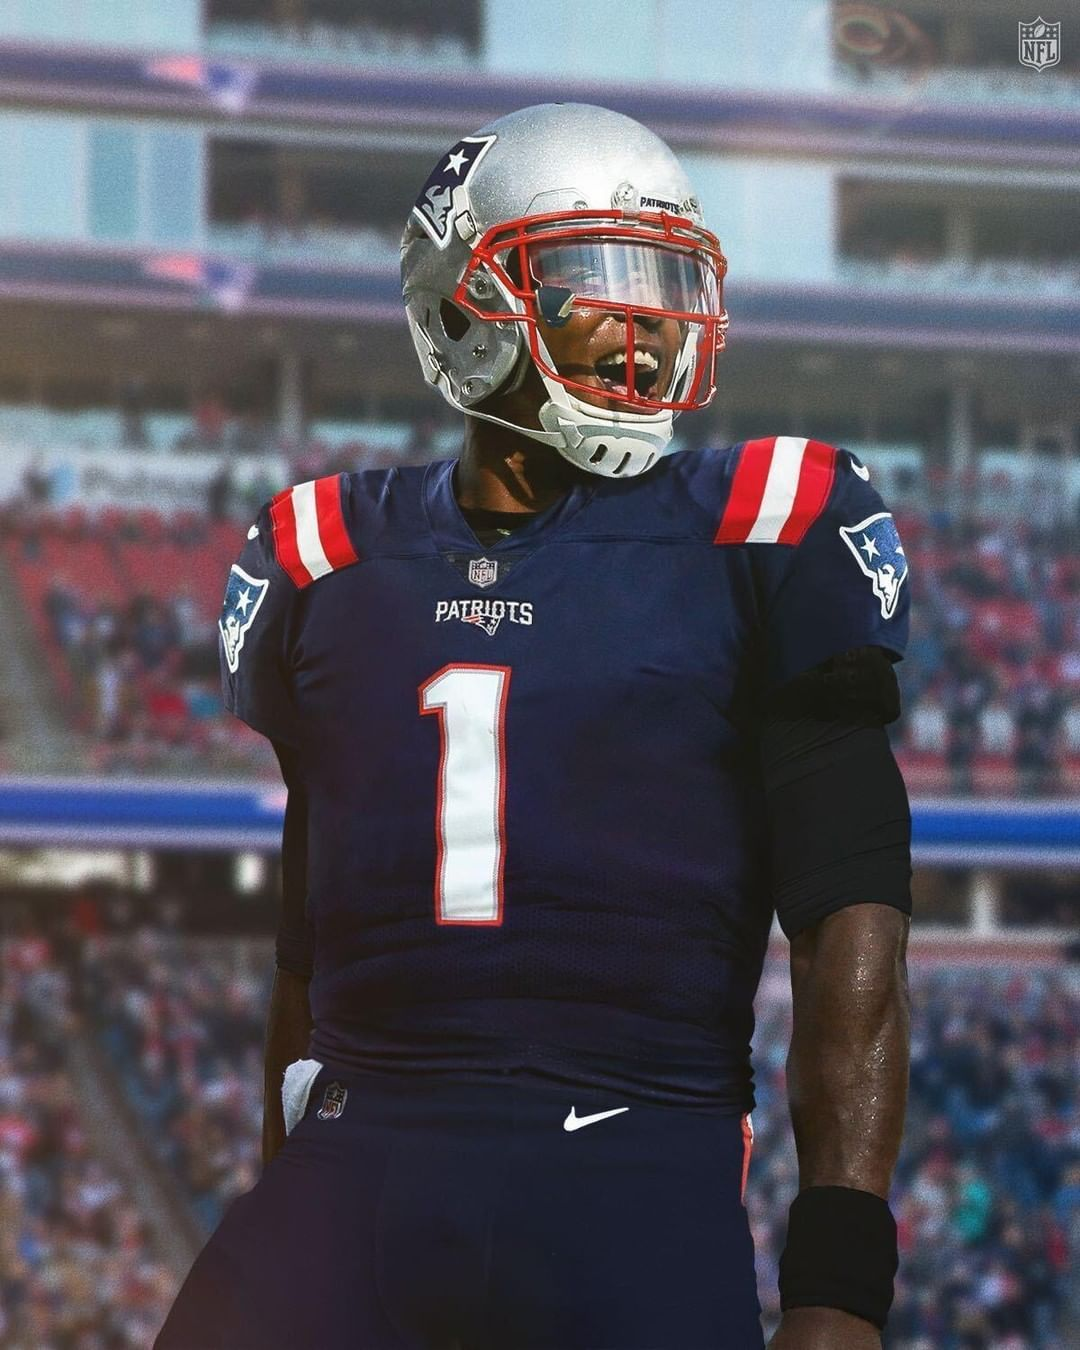 Nfl On Instagram Cameron1newton In 2020 Nfl Patriots Nfl New England Patriots Wallpaper